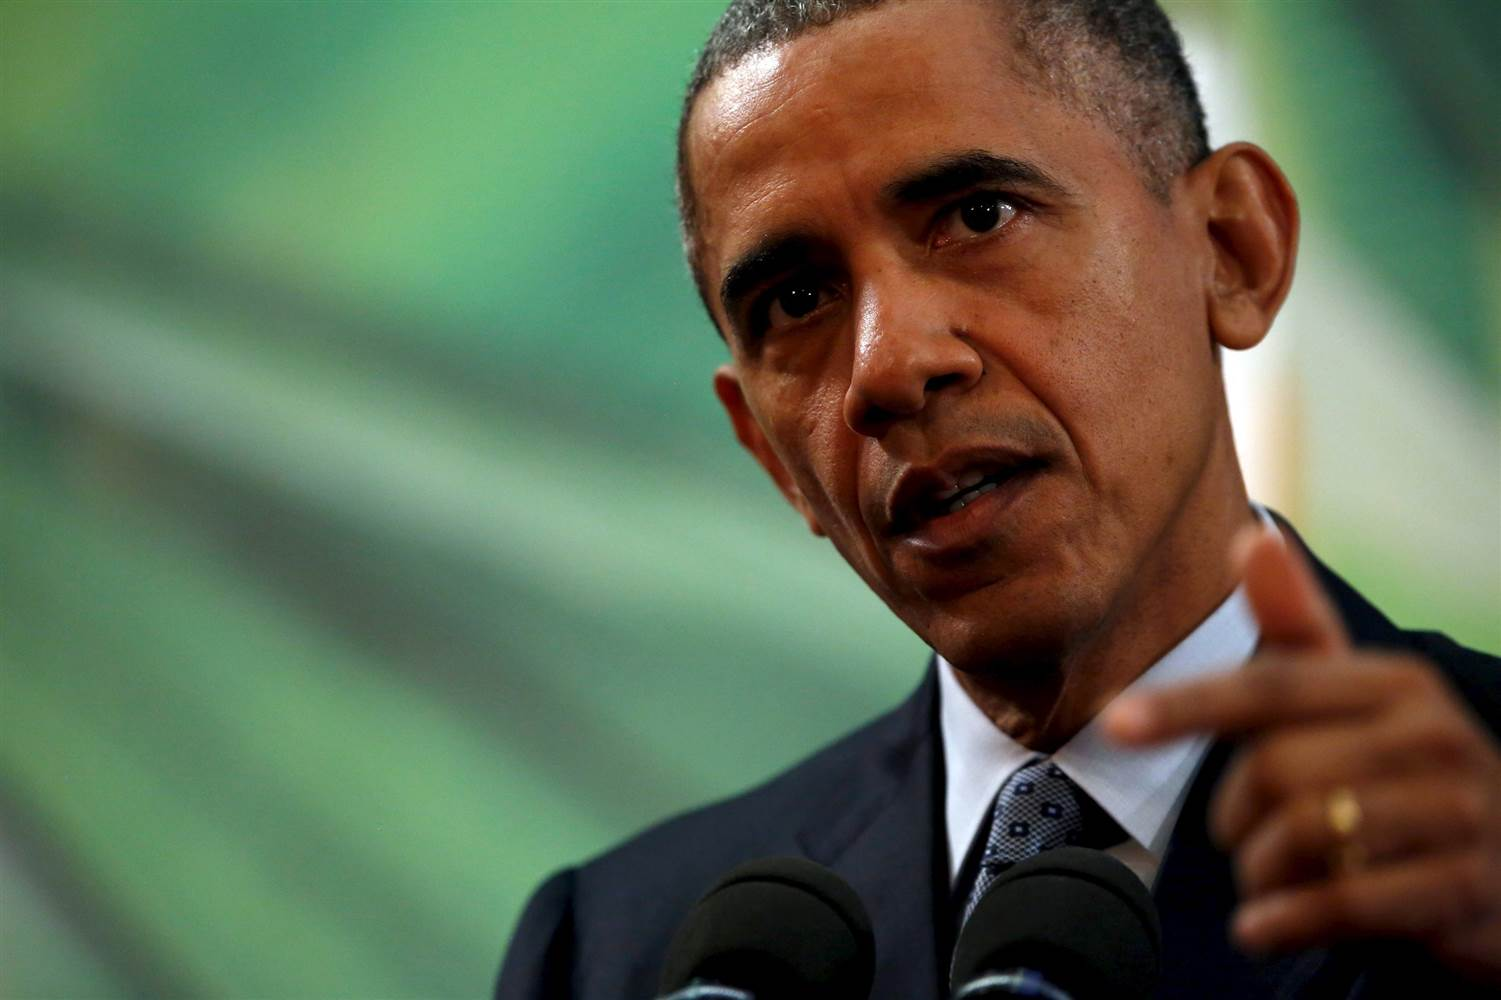 Obama Accuses Republicans Of Being 'Worried About Three-Year-Old Orphans' – The Daily Caller